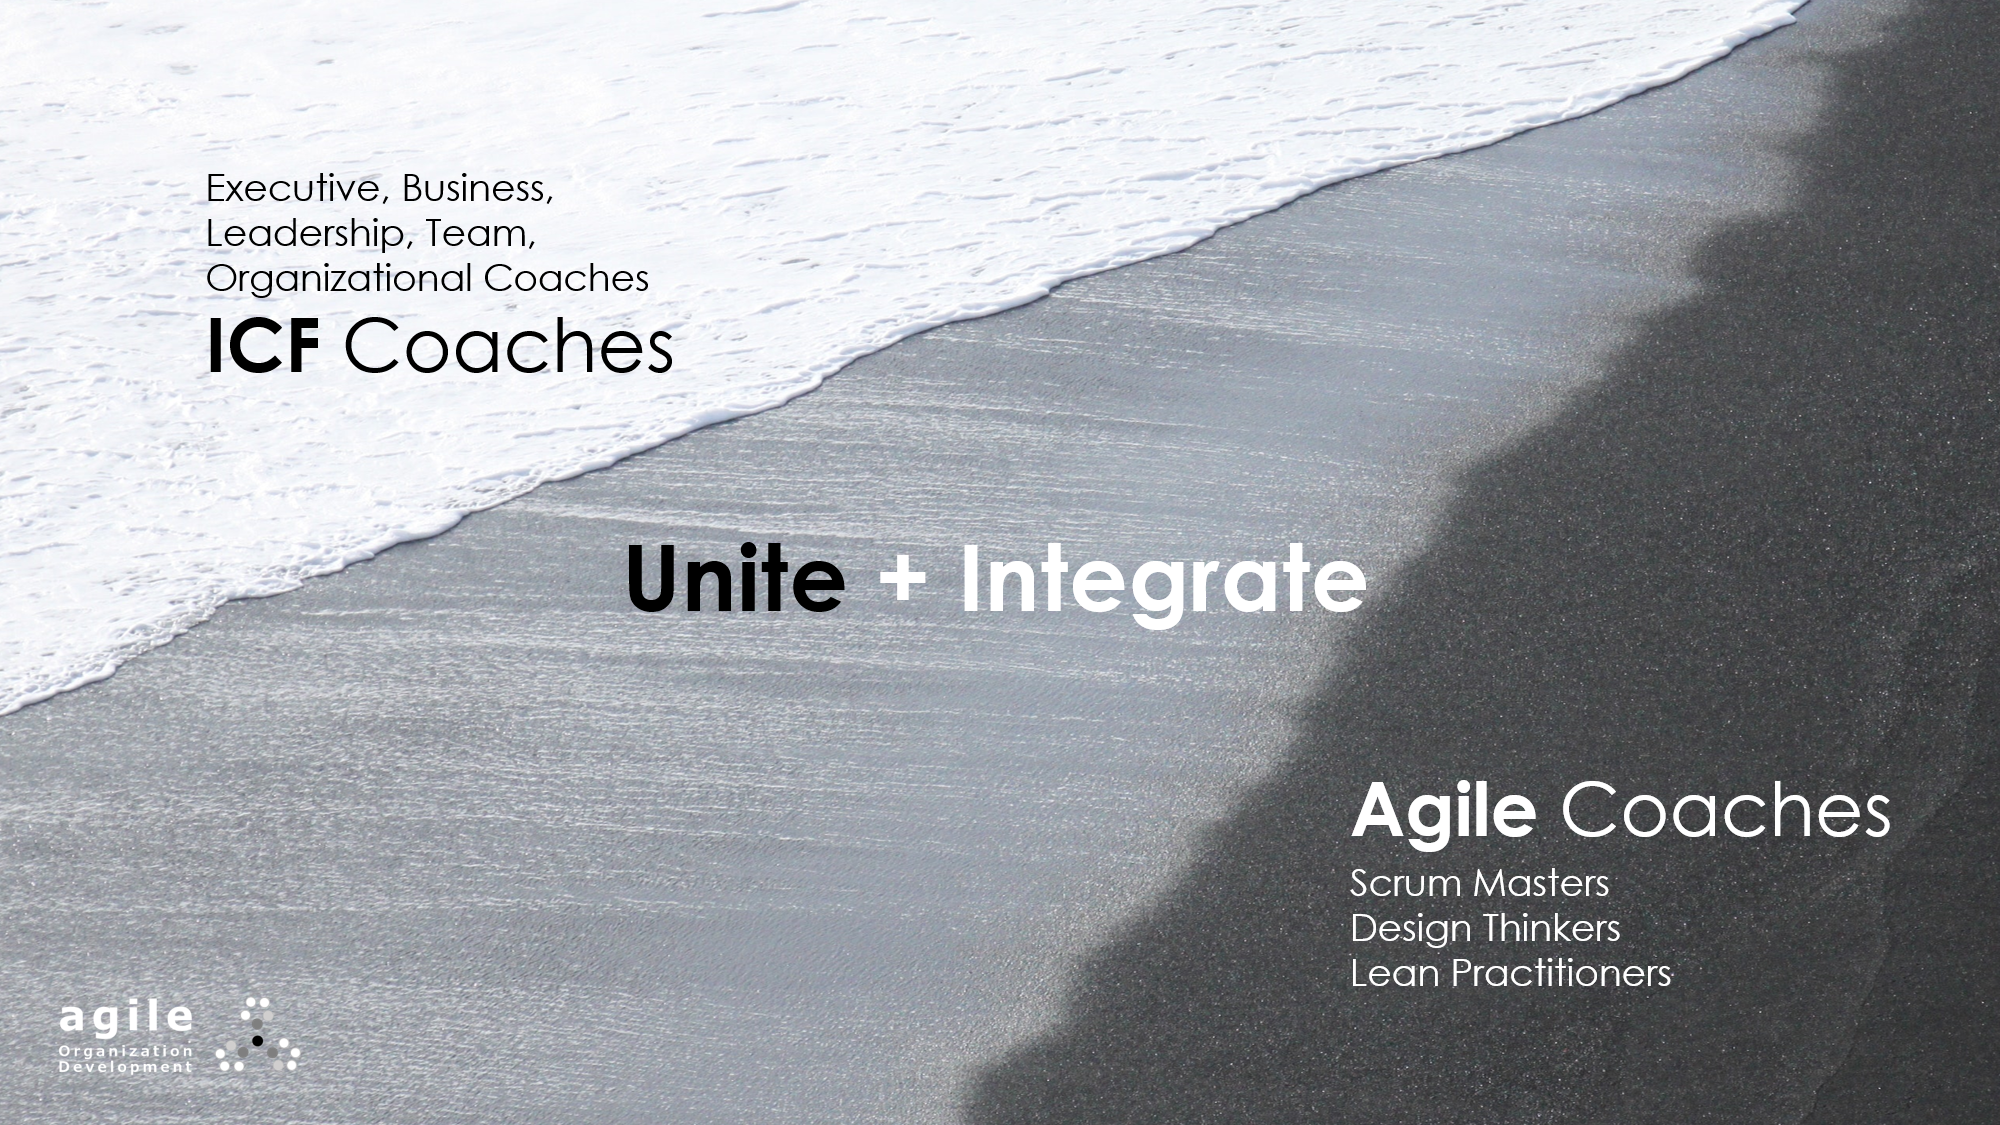 The Business Case of ICF + Agile Coaching for Organizational Interventions